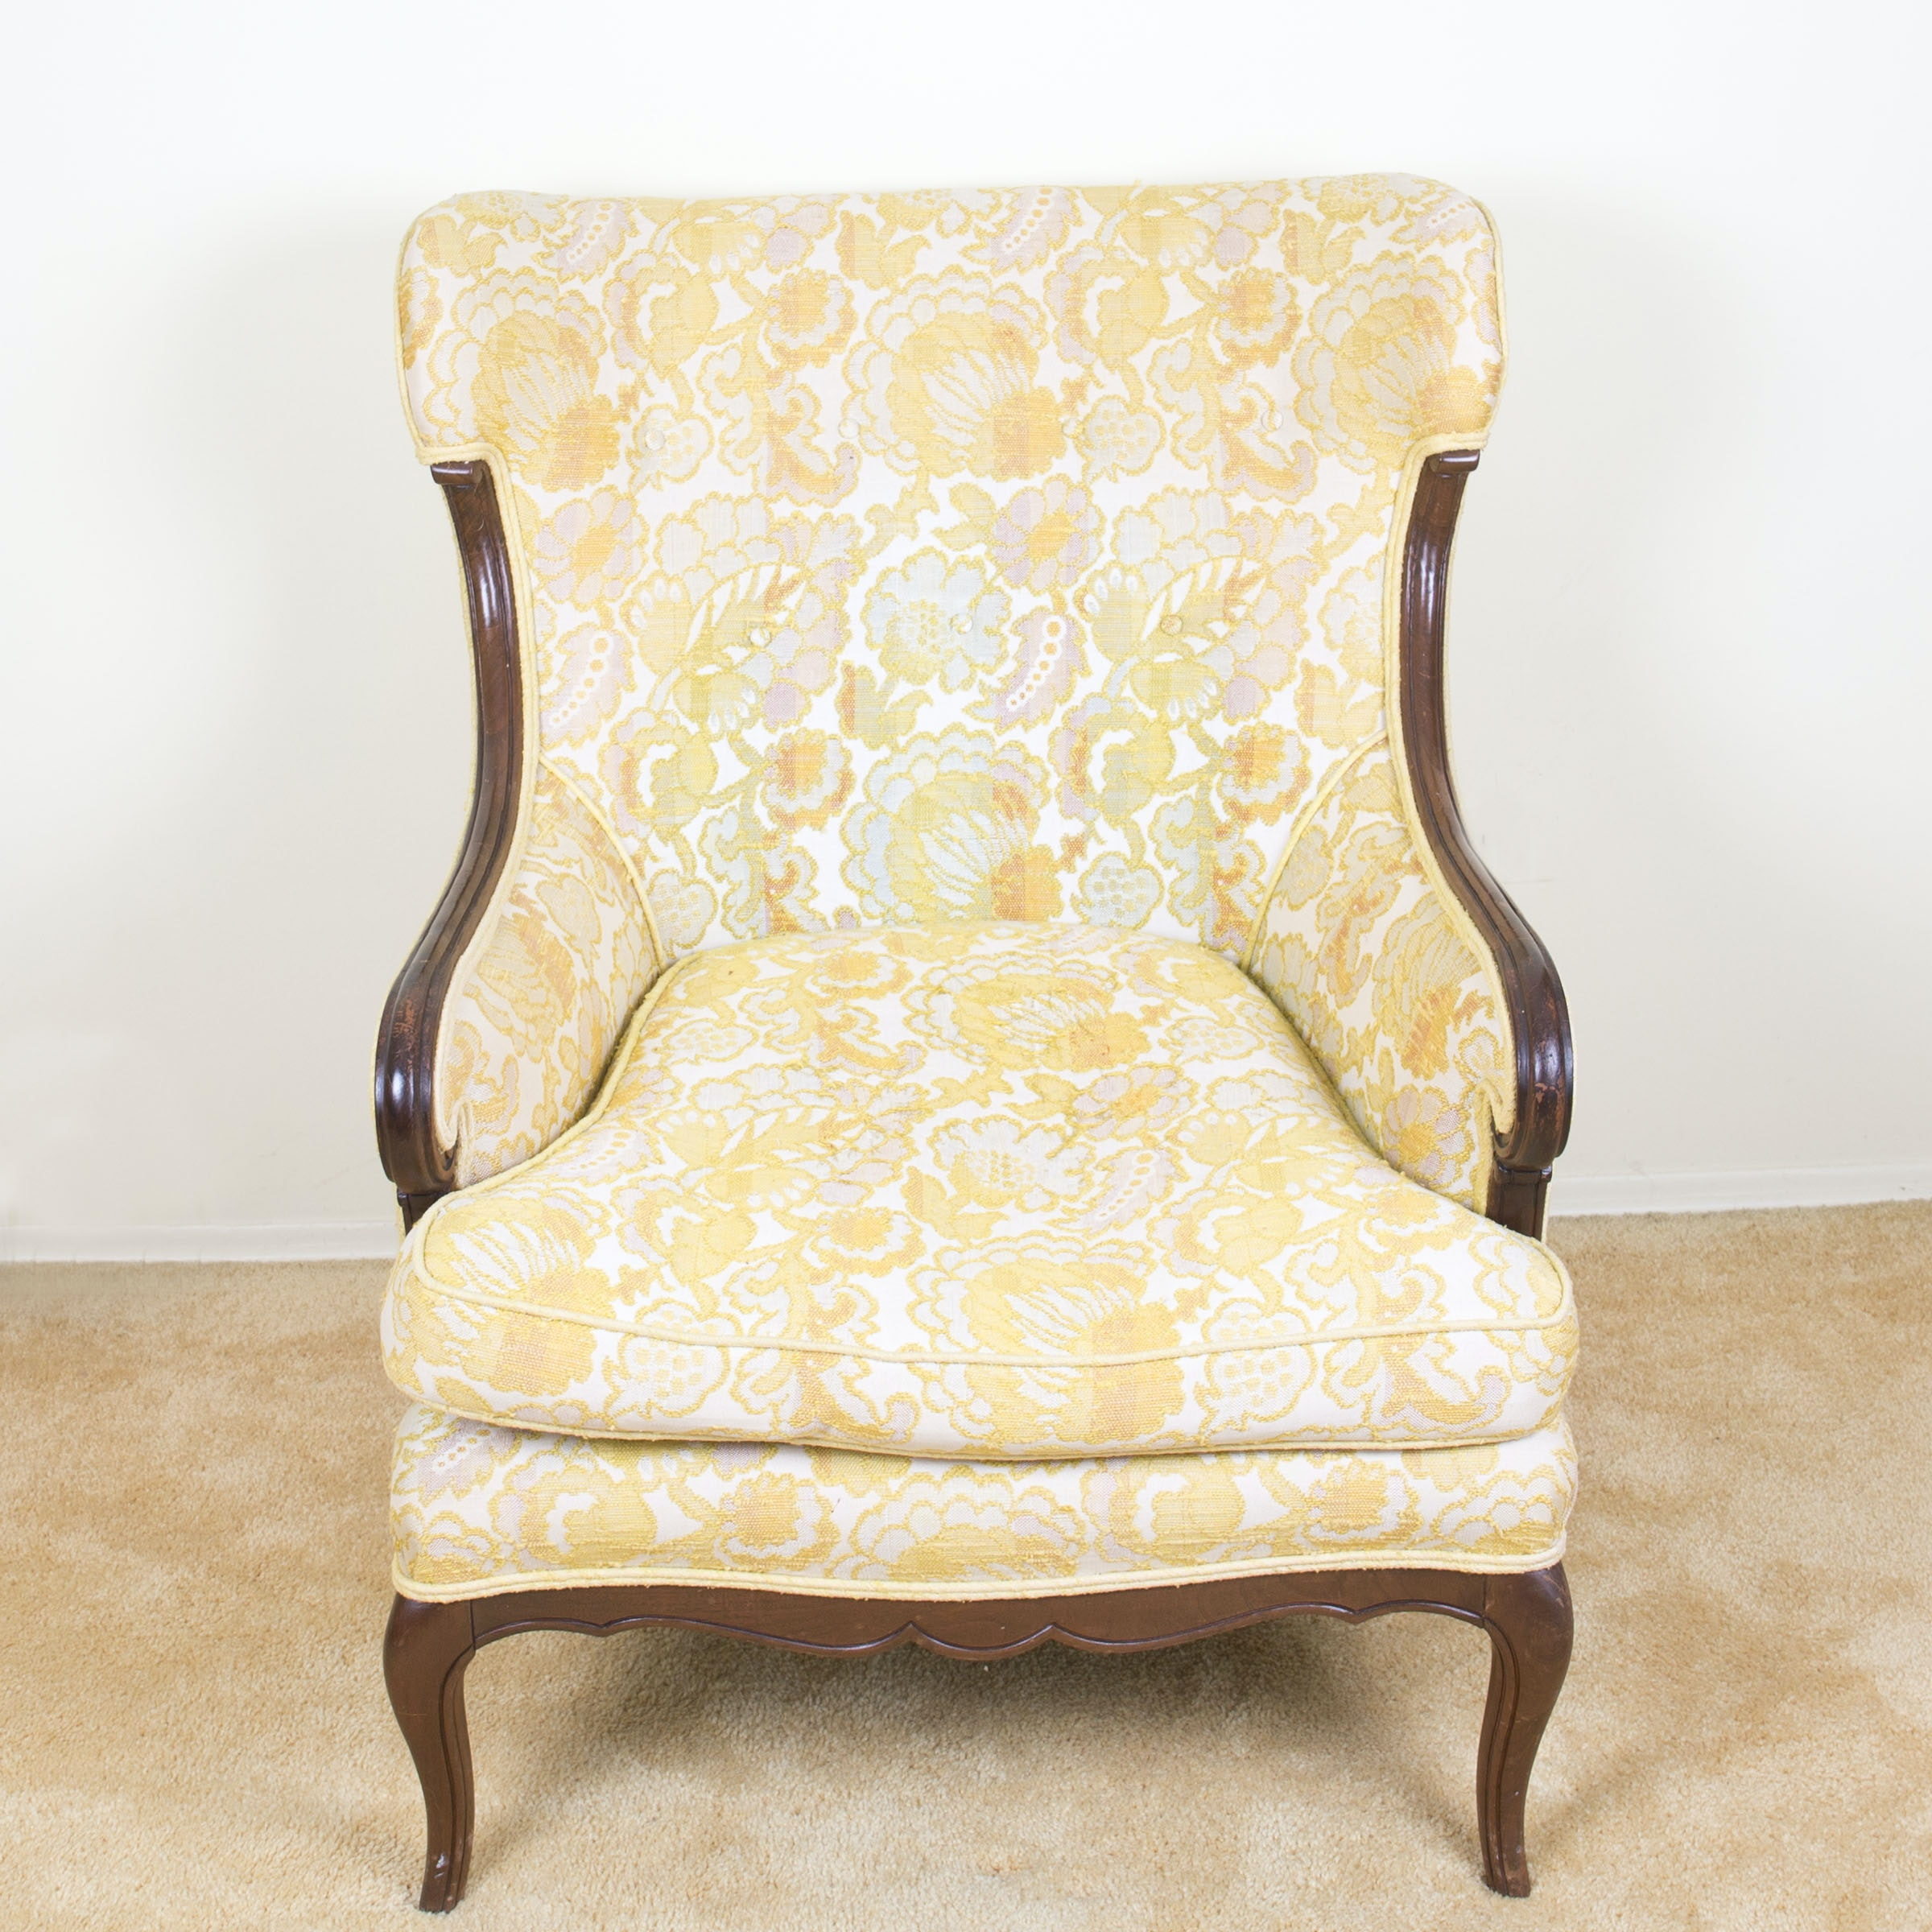 Vintage Bergere Chair with Yellow Floral Upholstery